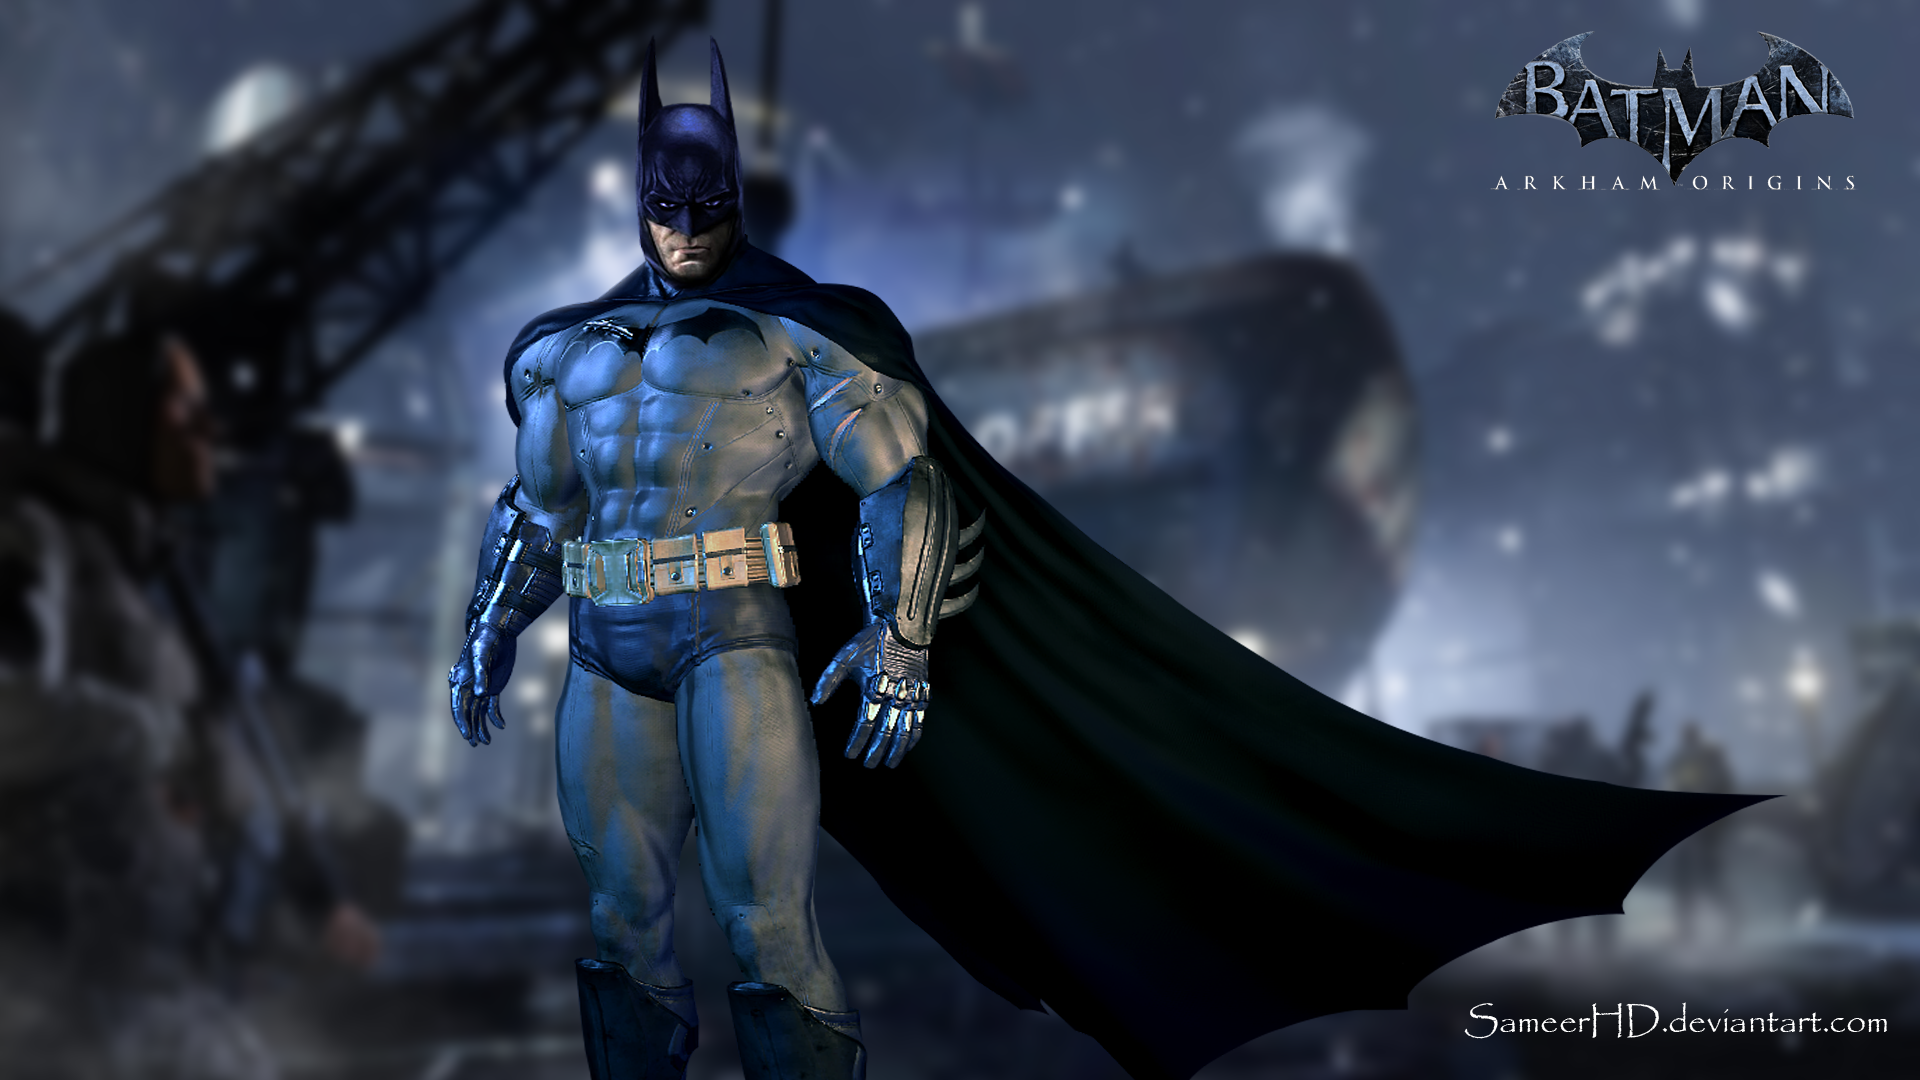 Batman Arkham Origins Wallpaper By Sameerhd On Deviantart